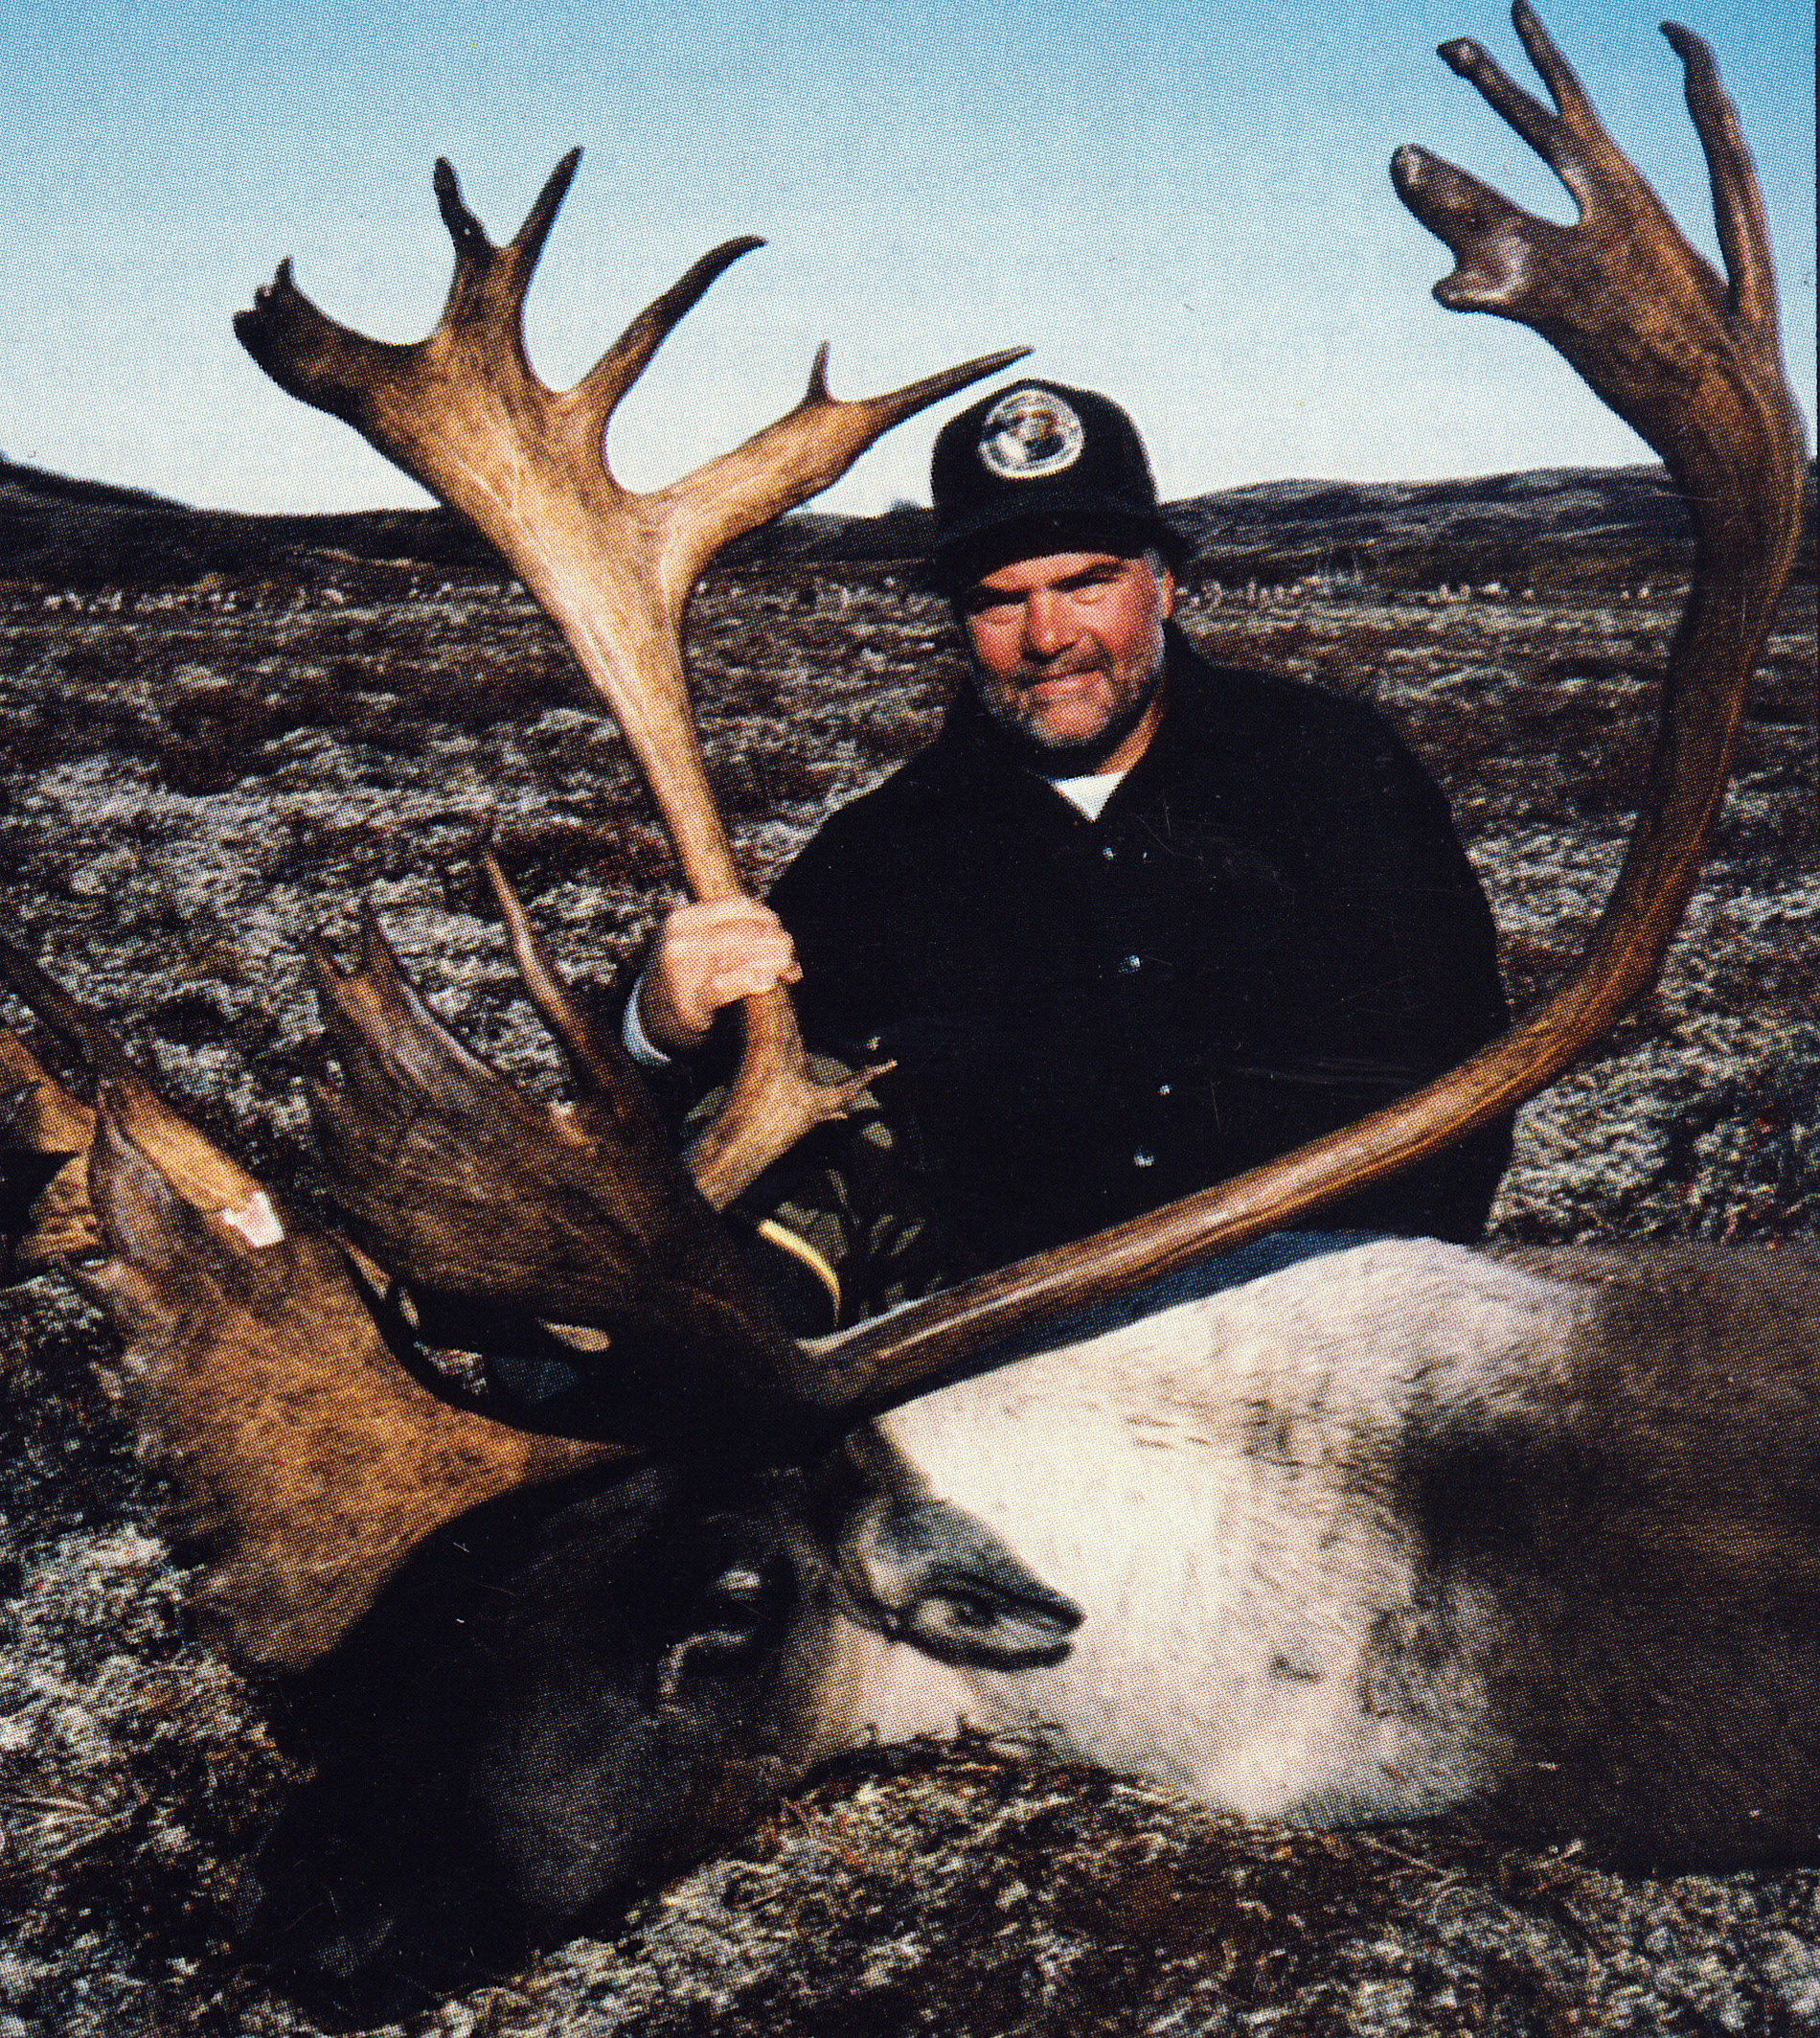 Jim Krapf of DE with his massive 407 3/8 B&C caribou. His guide was my partner Brent who had come up to Otter Lake after the moose season on the Alaskan Peninsula